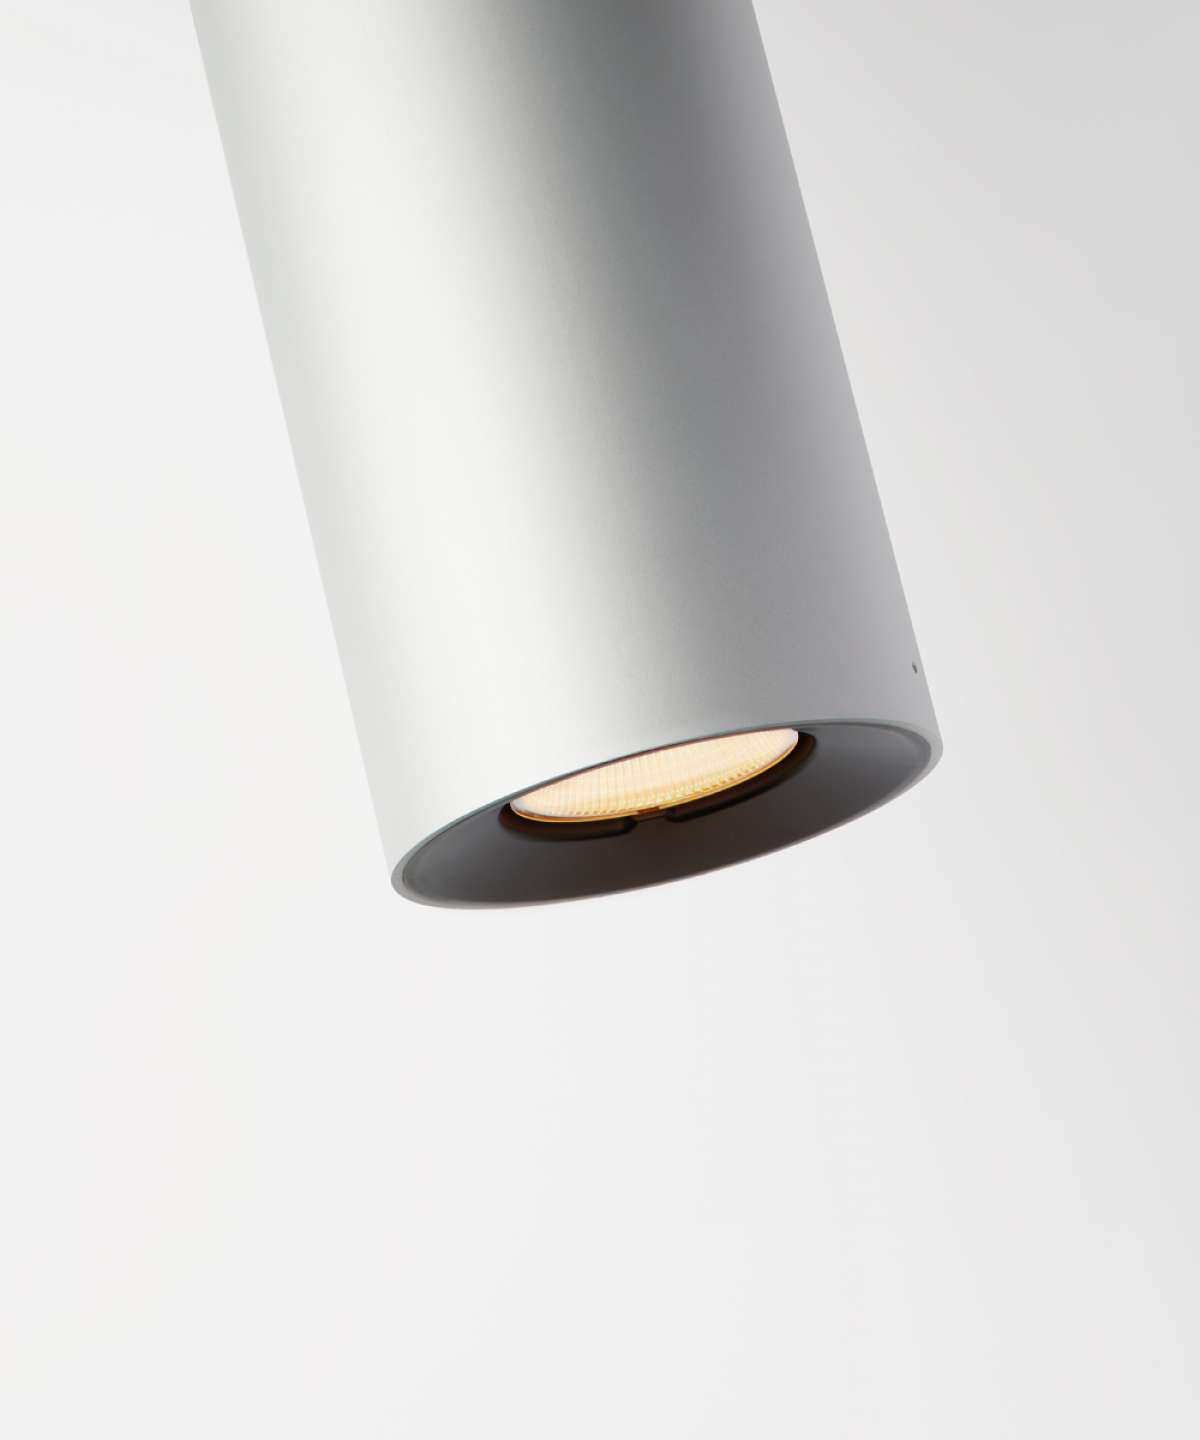 E04 Ceiling Lamp -  Ceiling lights produced in two diameters (70 mm and 134 mm) and various lengths. The recessed positioning of the light source increases the angle of shading and lighting comfort  Size and finishes are varies please enquire for more information | Matter of Stuff